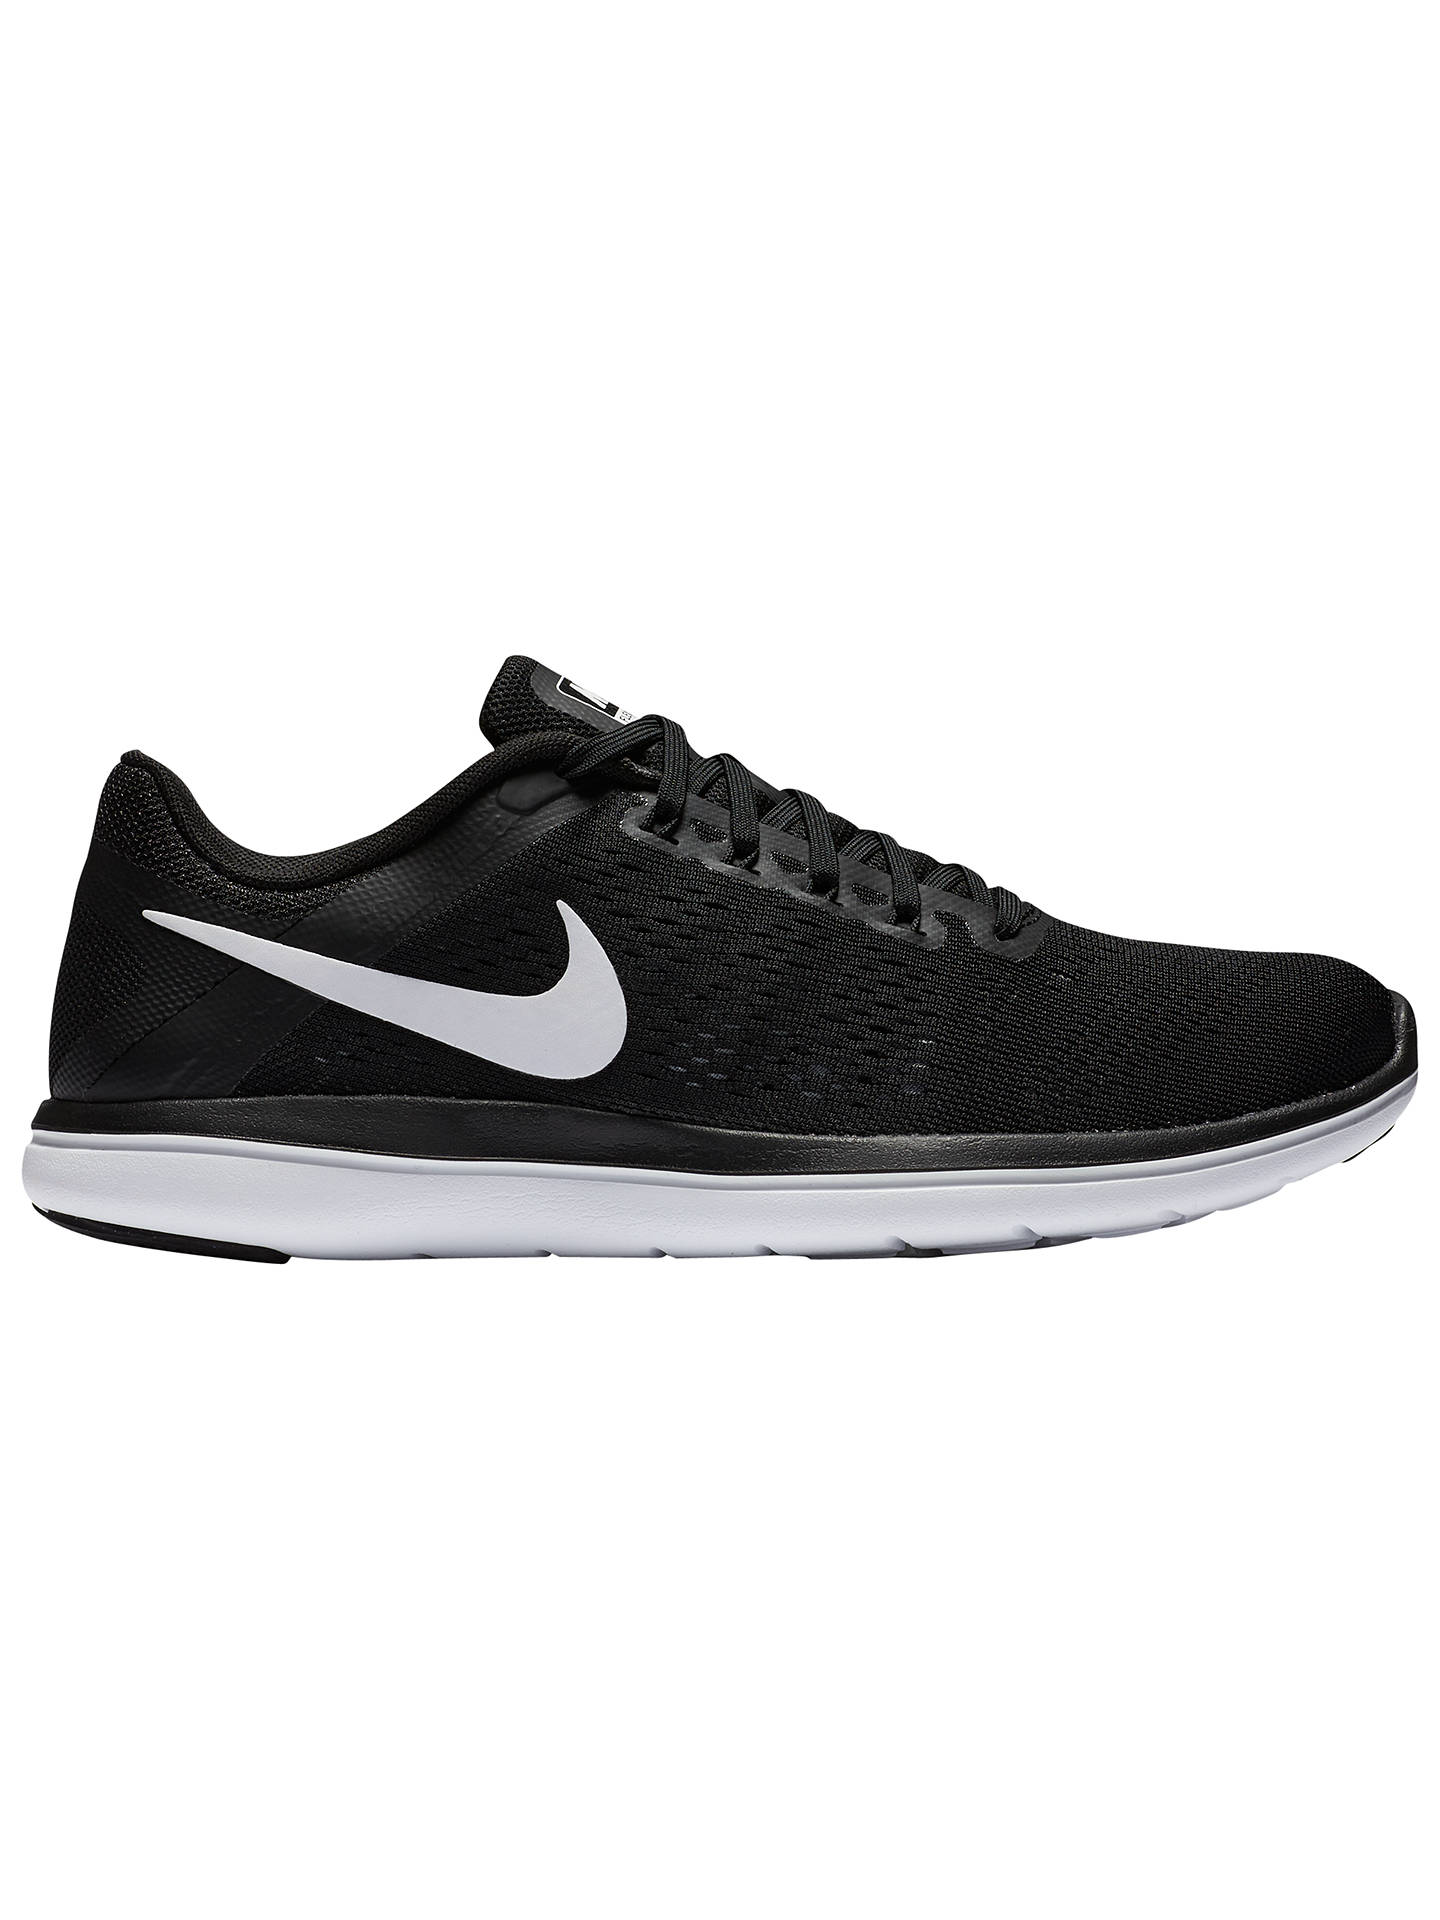 new products 20353 526ac Buy Nike Flex 2016 RN Women s Running Shoes, Black White, 4 Online at ...